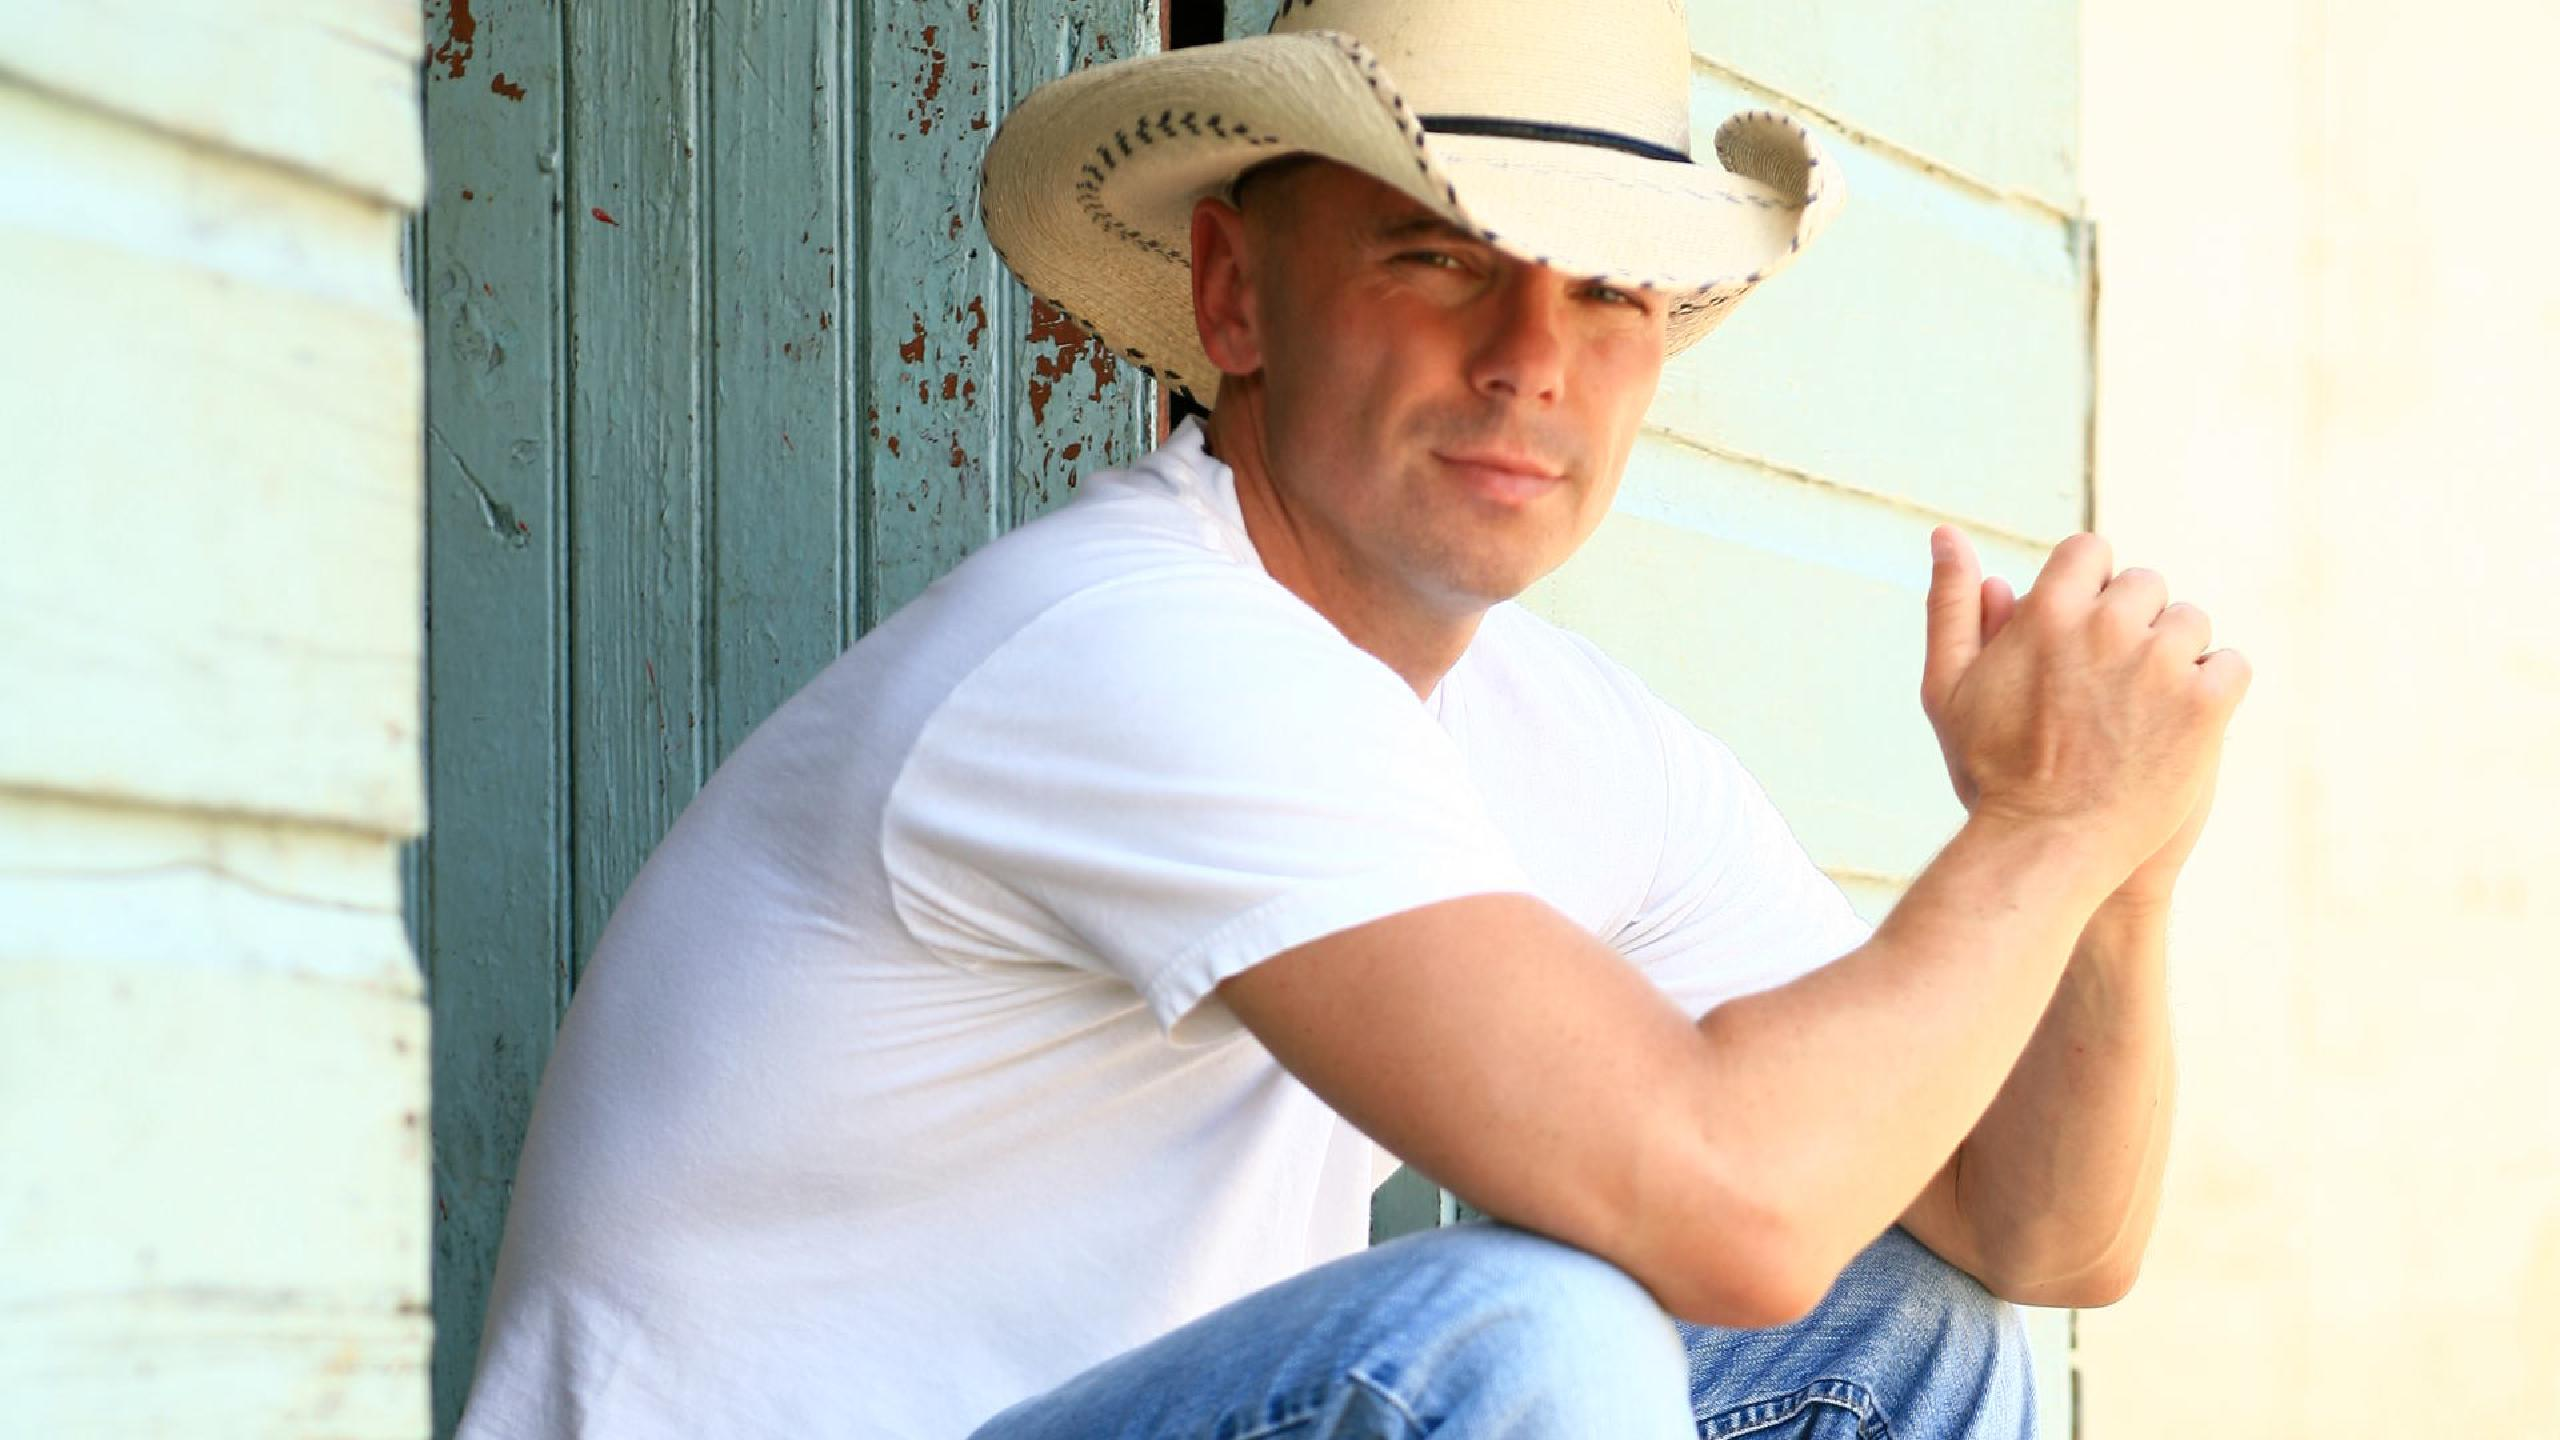 Kenny Chesney 2020 Tour Kenny Chesney tour dates 2019 2020. Kenny Chesney tickets and